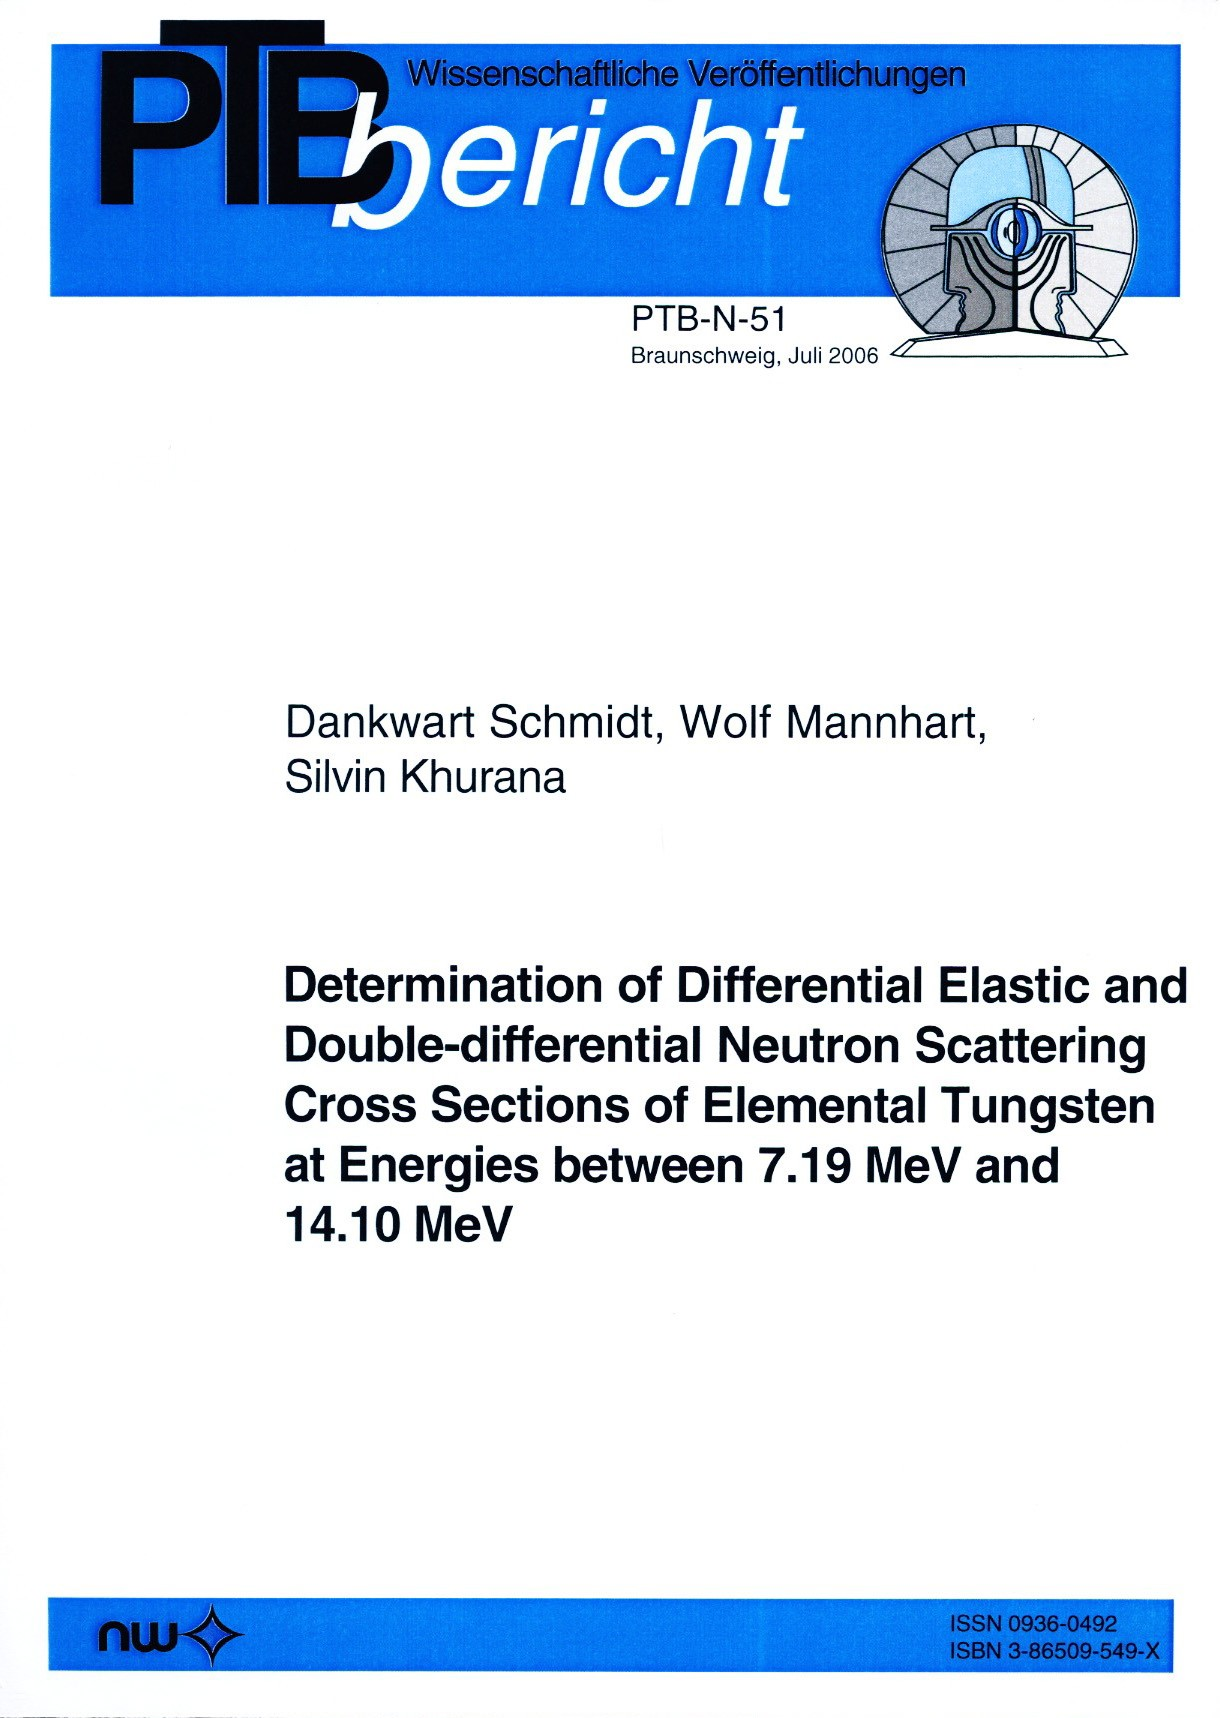 Determination of Differential Elastic and Double-differential Neutron Scattering Cross Sections of Elemental Tungsten at Energies between 7.19 MeV and 14.10 MeV